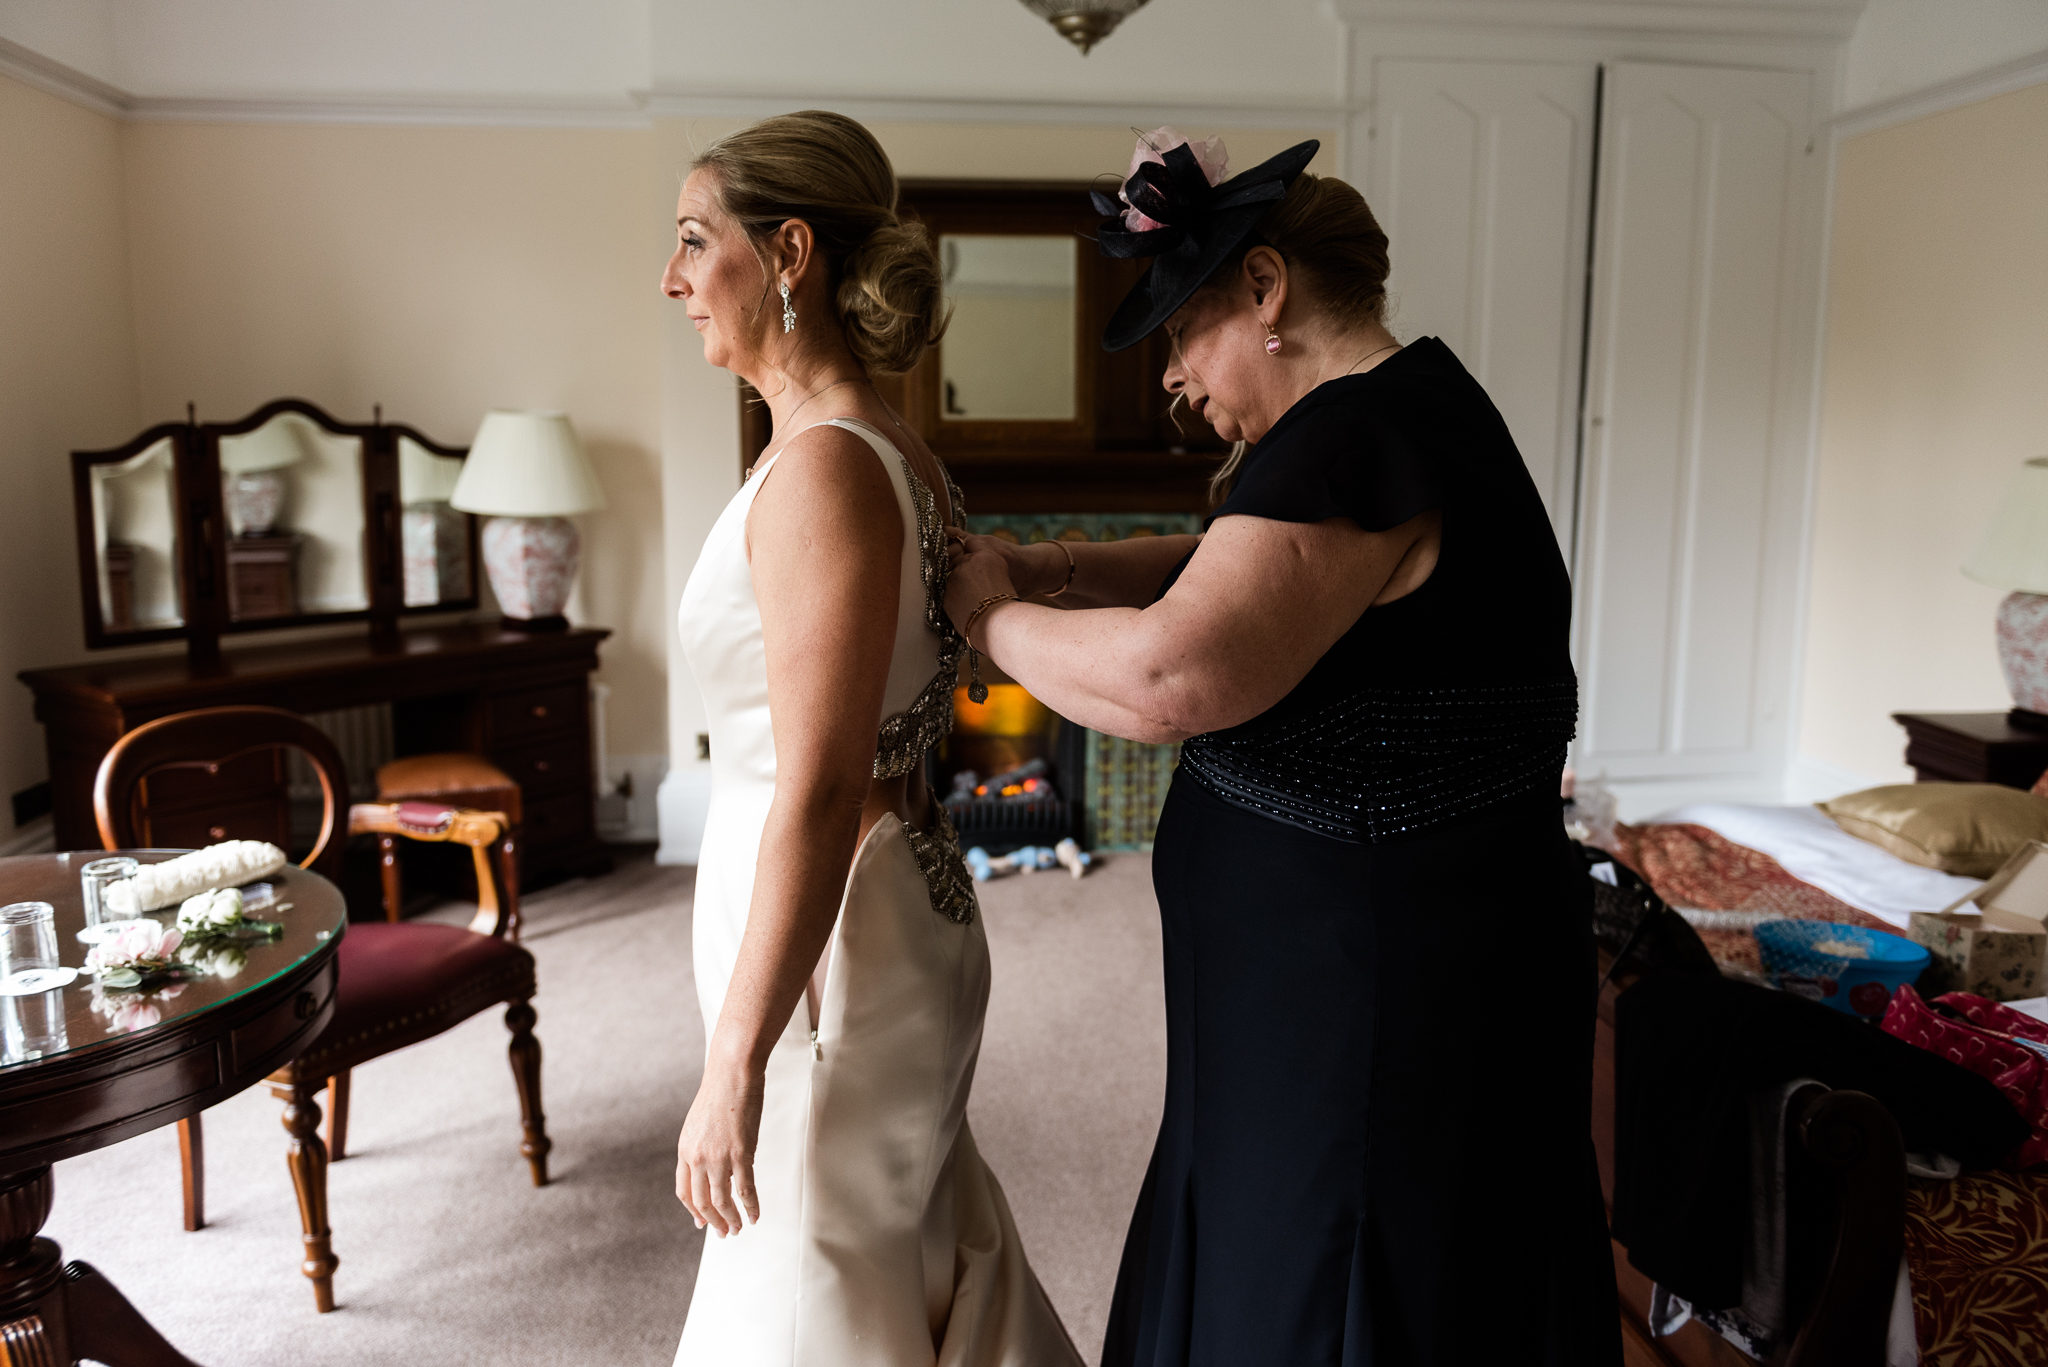 Stylish Easter Wedding at Pendrell Hall Country House Wedding Venue Staffordshire - Jenny Harper-18.jpg